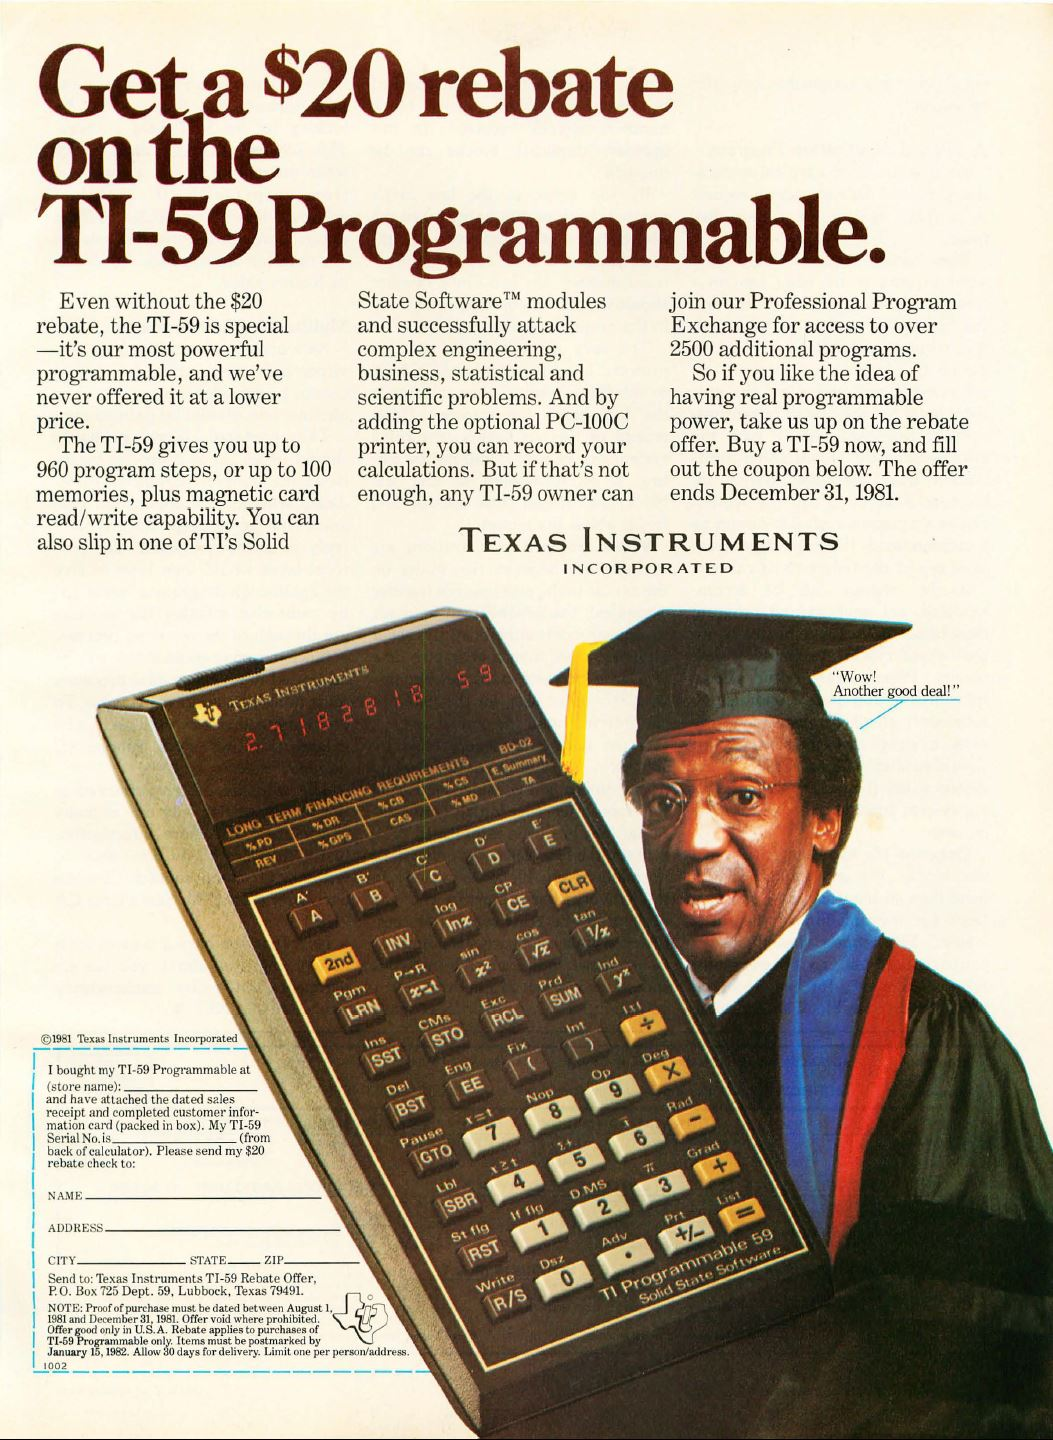 Ti-59 Programmable